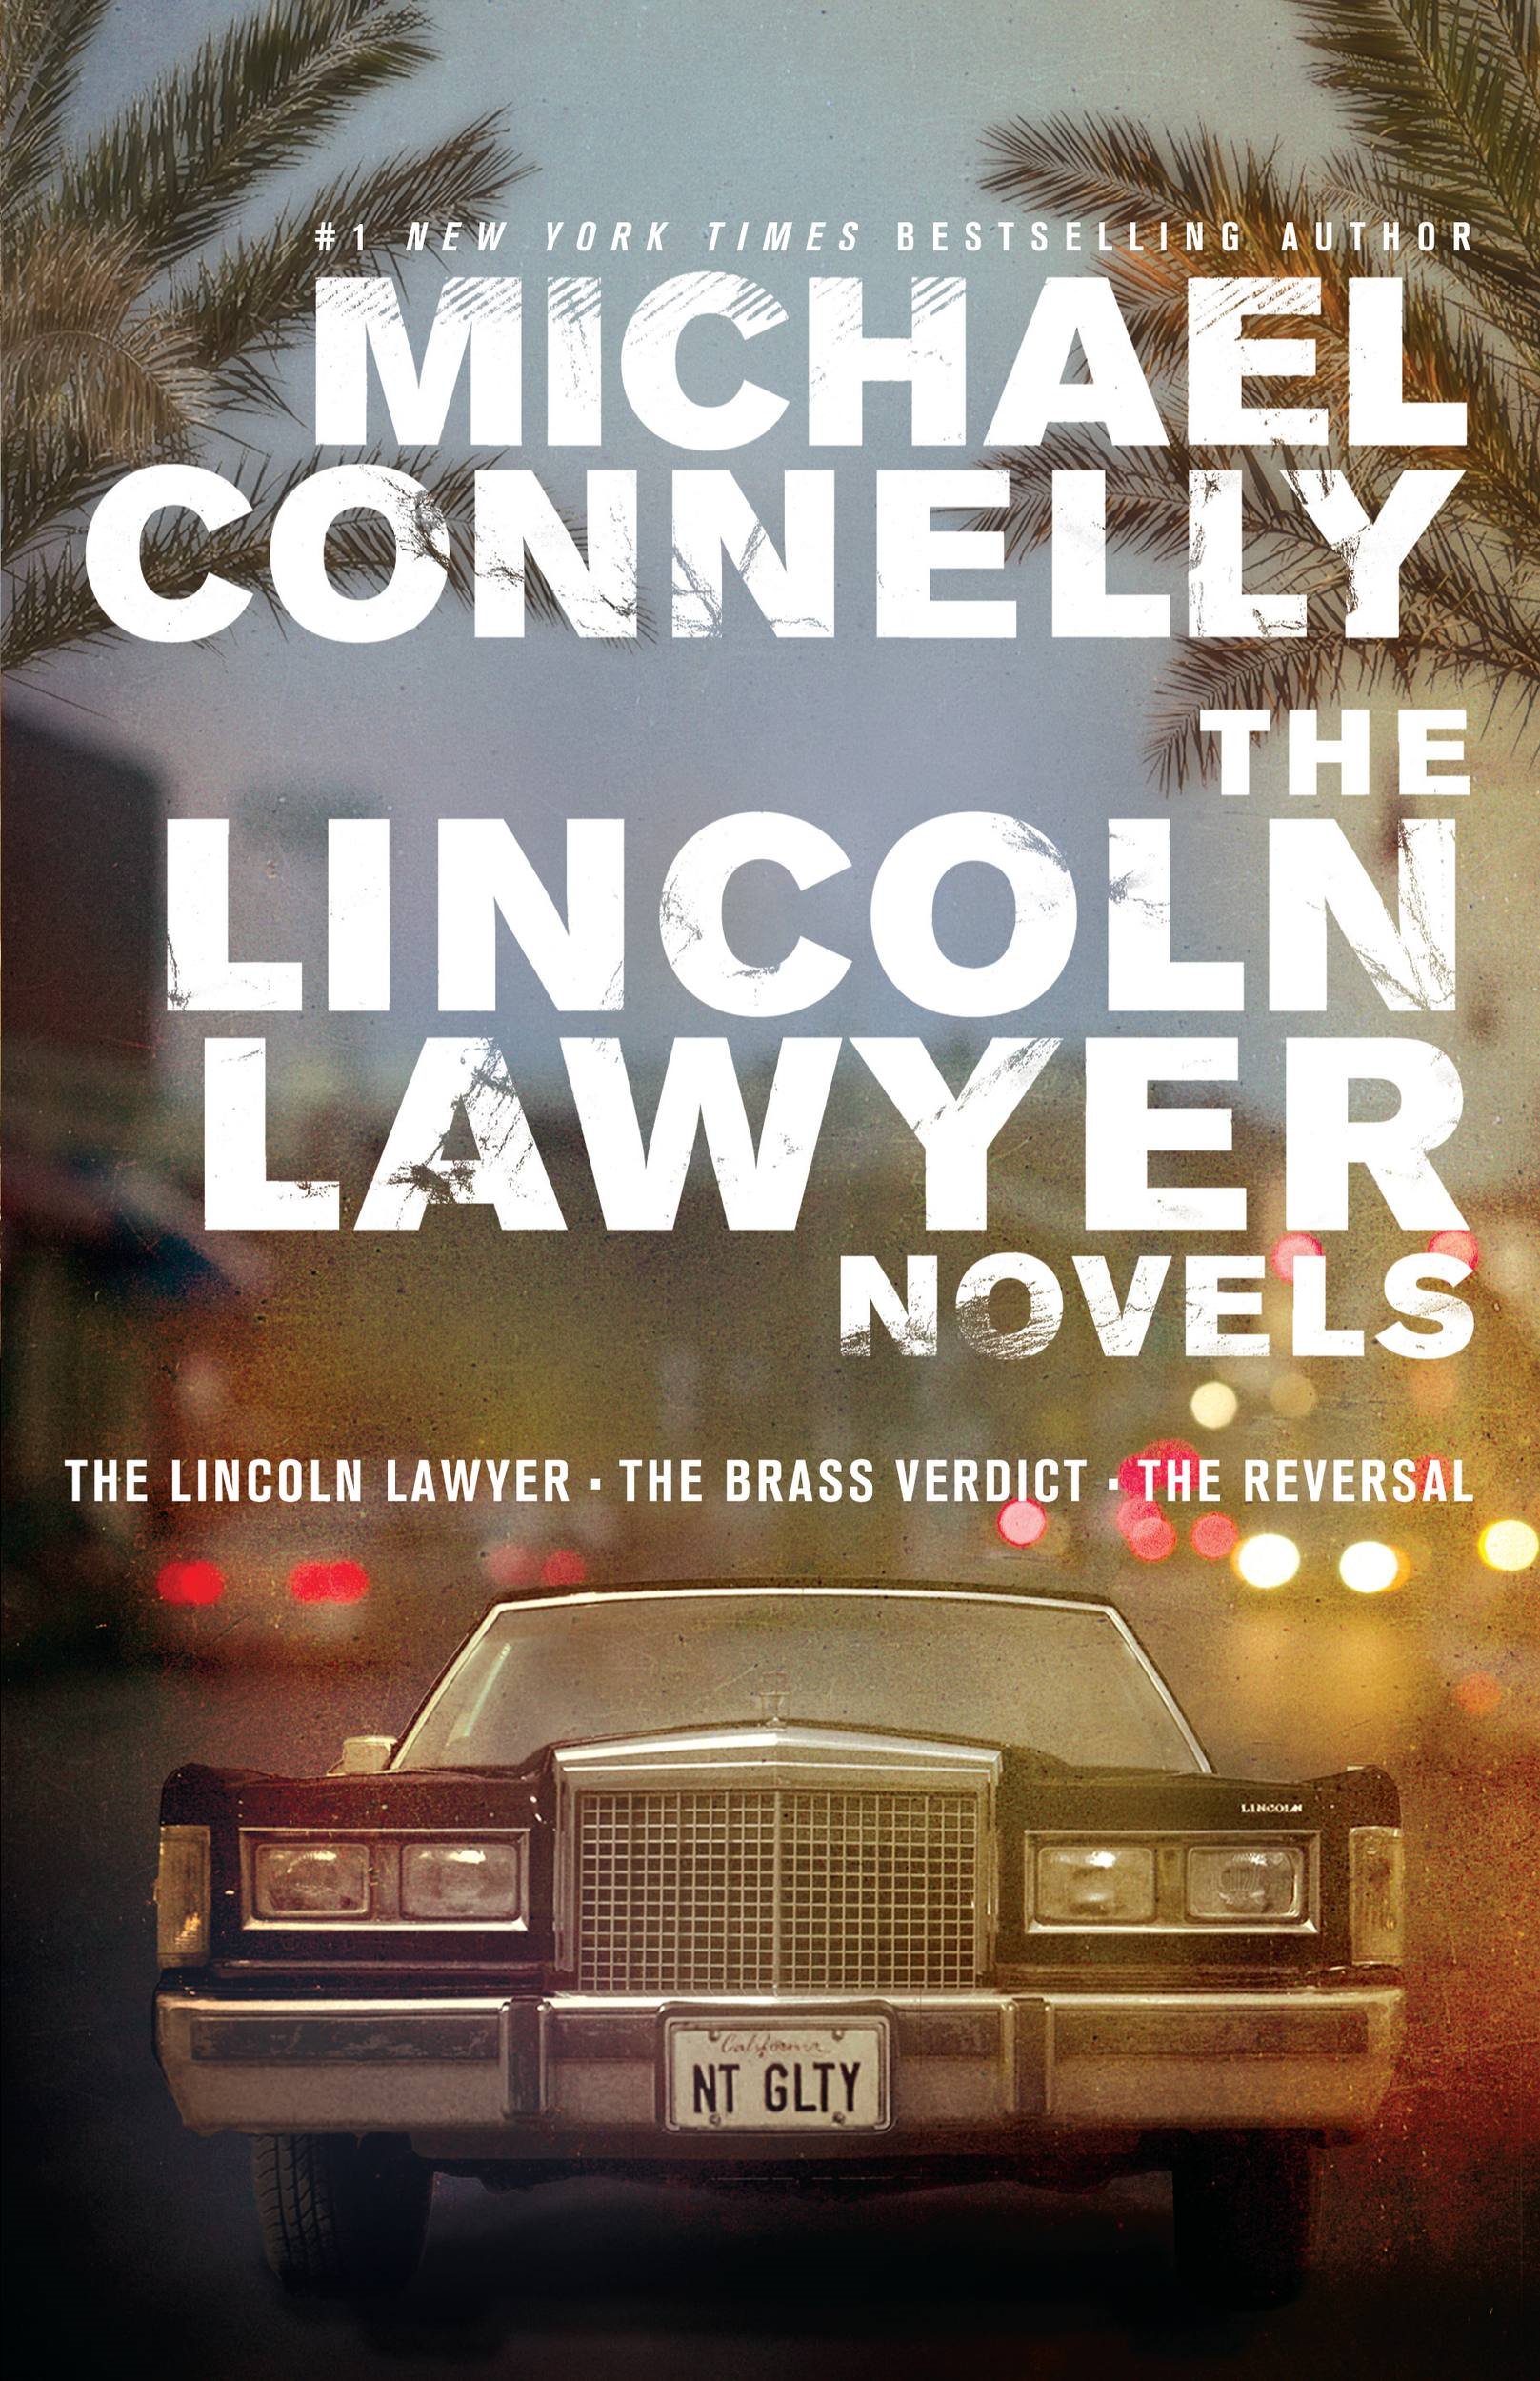 The Lincoln Lawyer Novels By: Michael Connelly